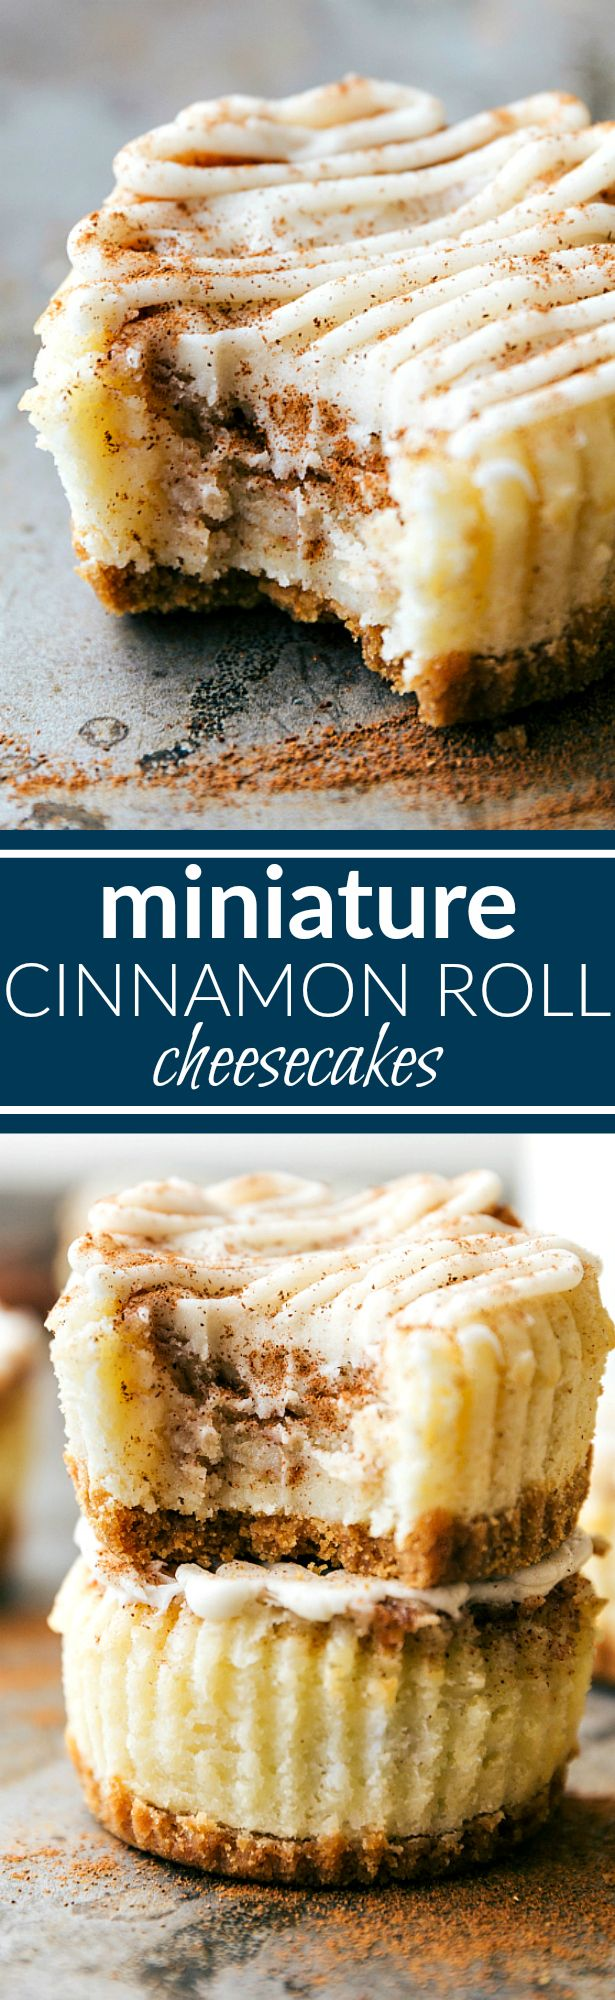 The BEST DESSERT! Miniature cinnamon roll cheesecakes with a delicious cinnamon swirl and cream cheese frosting topping!